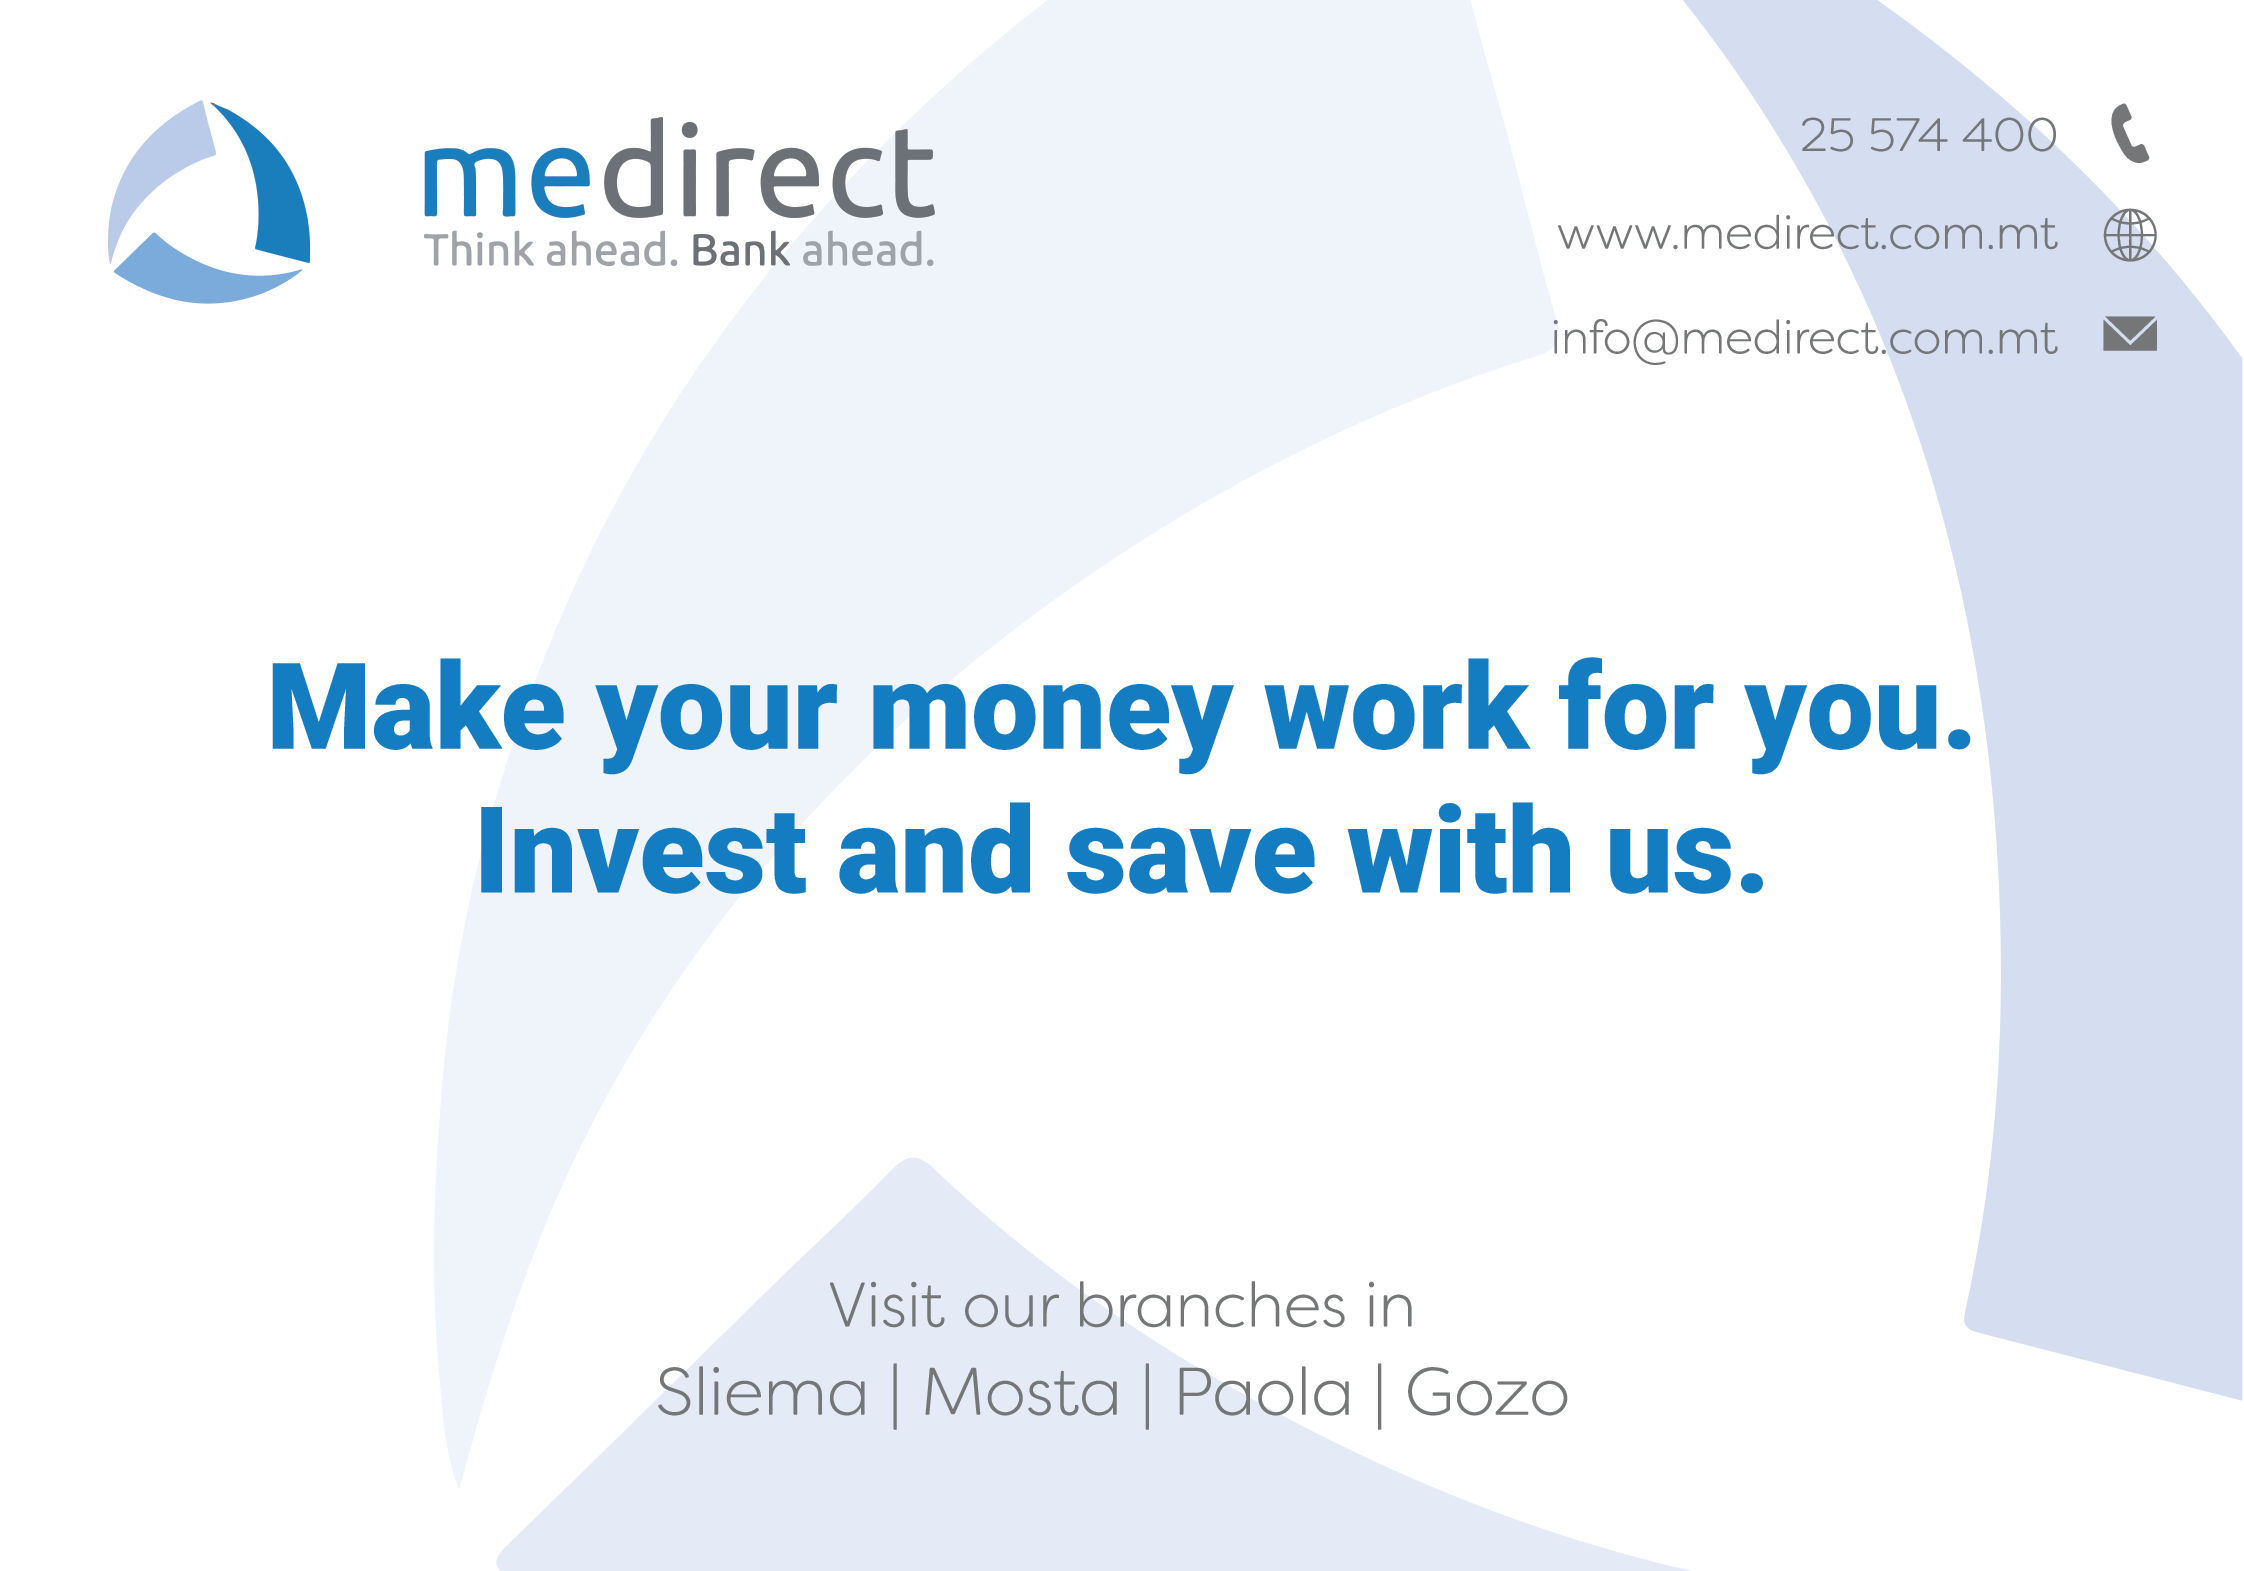 MeDirect Bank (Malta) plc - Banks